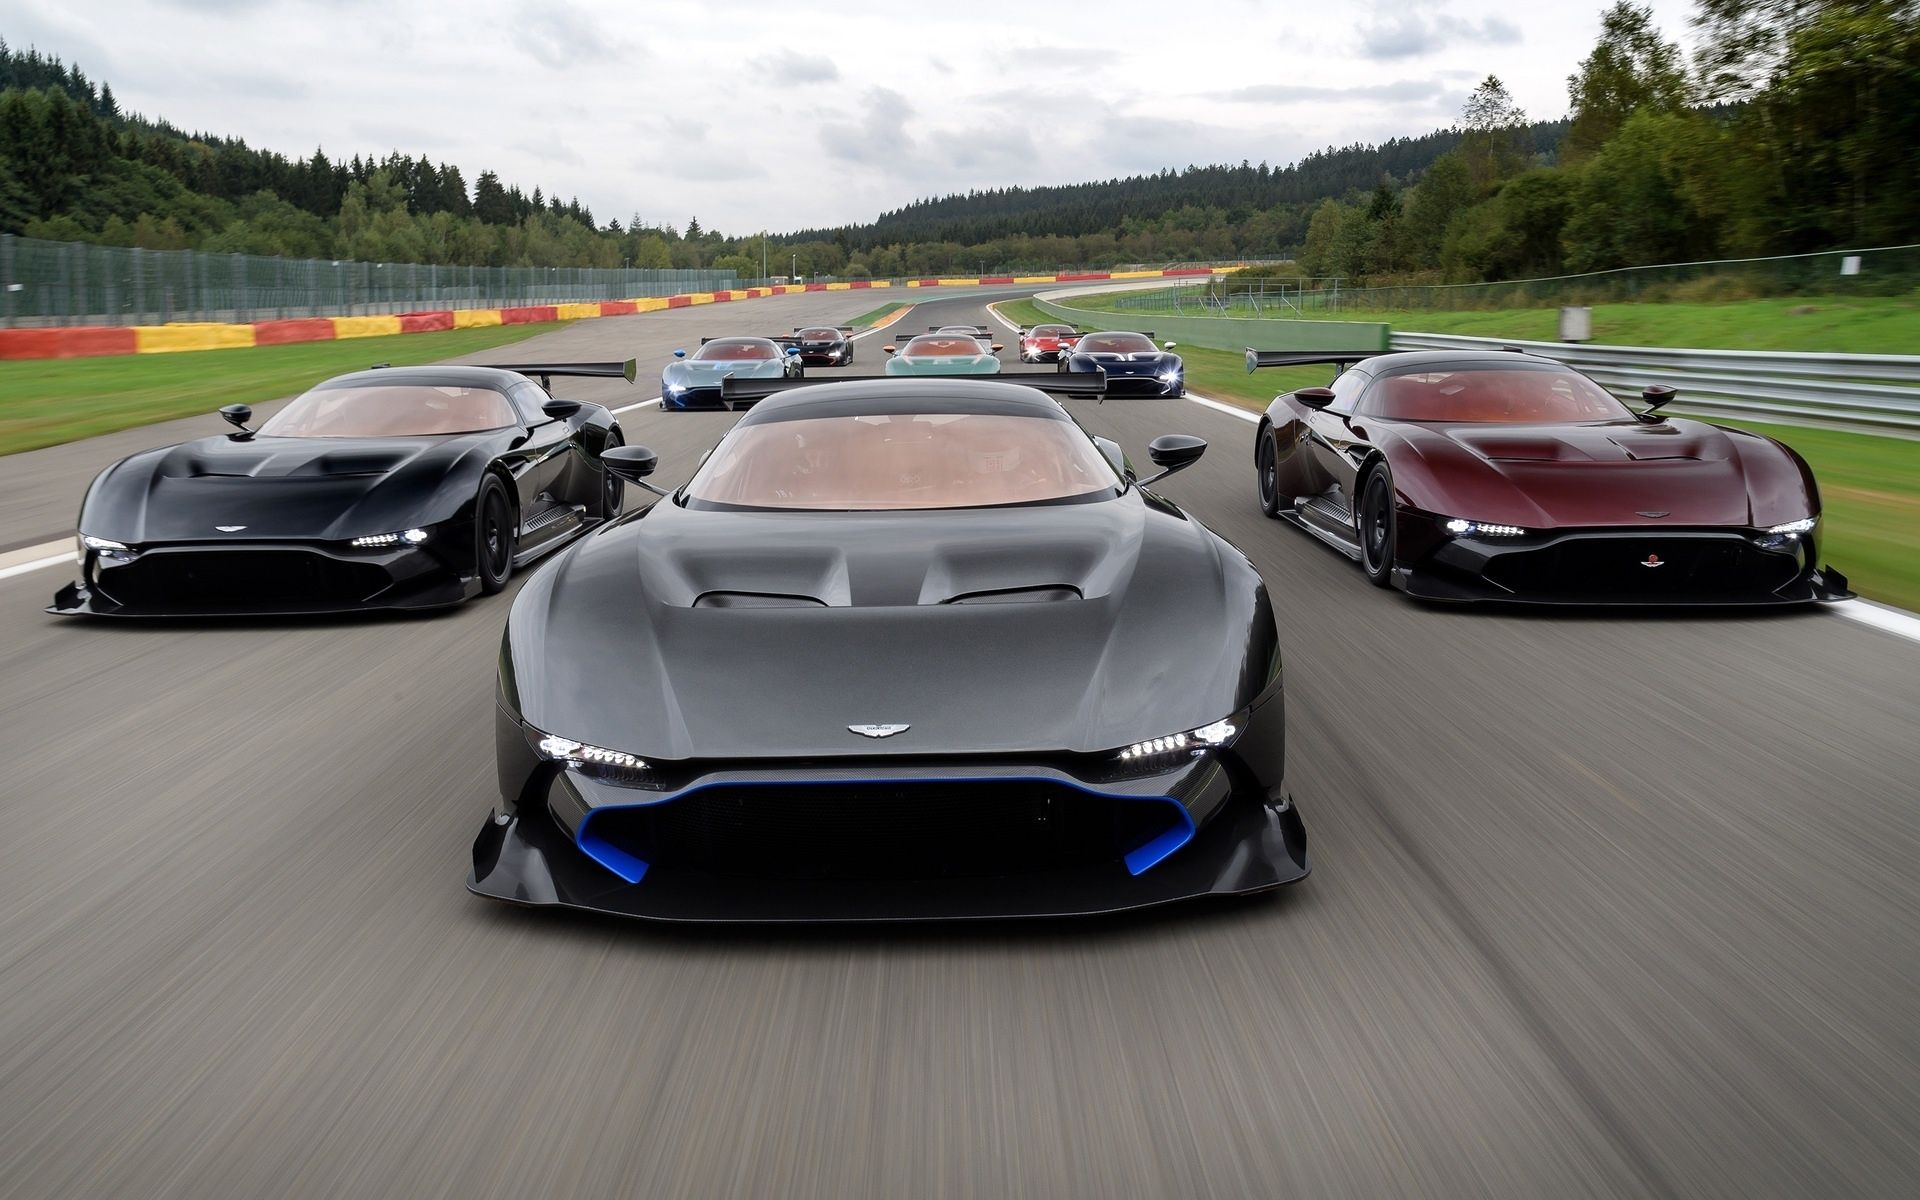 15 of 24 Aston Martin Vulcan for Sale at $3,085,332